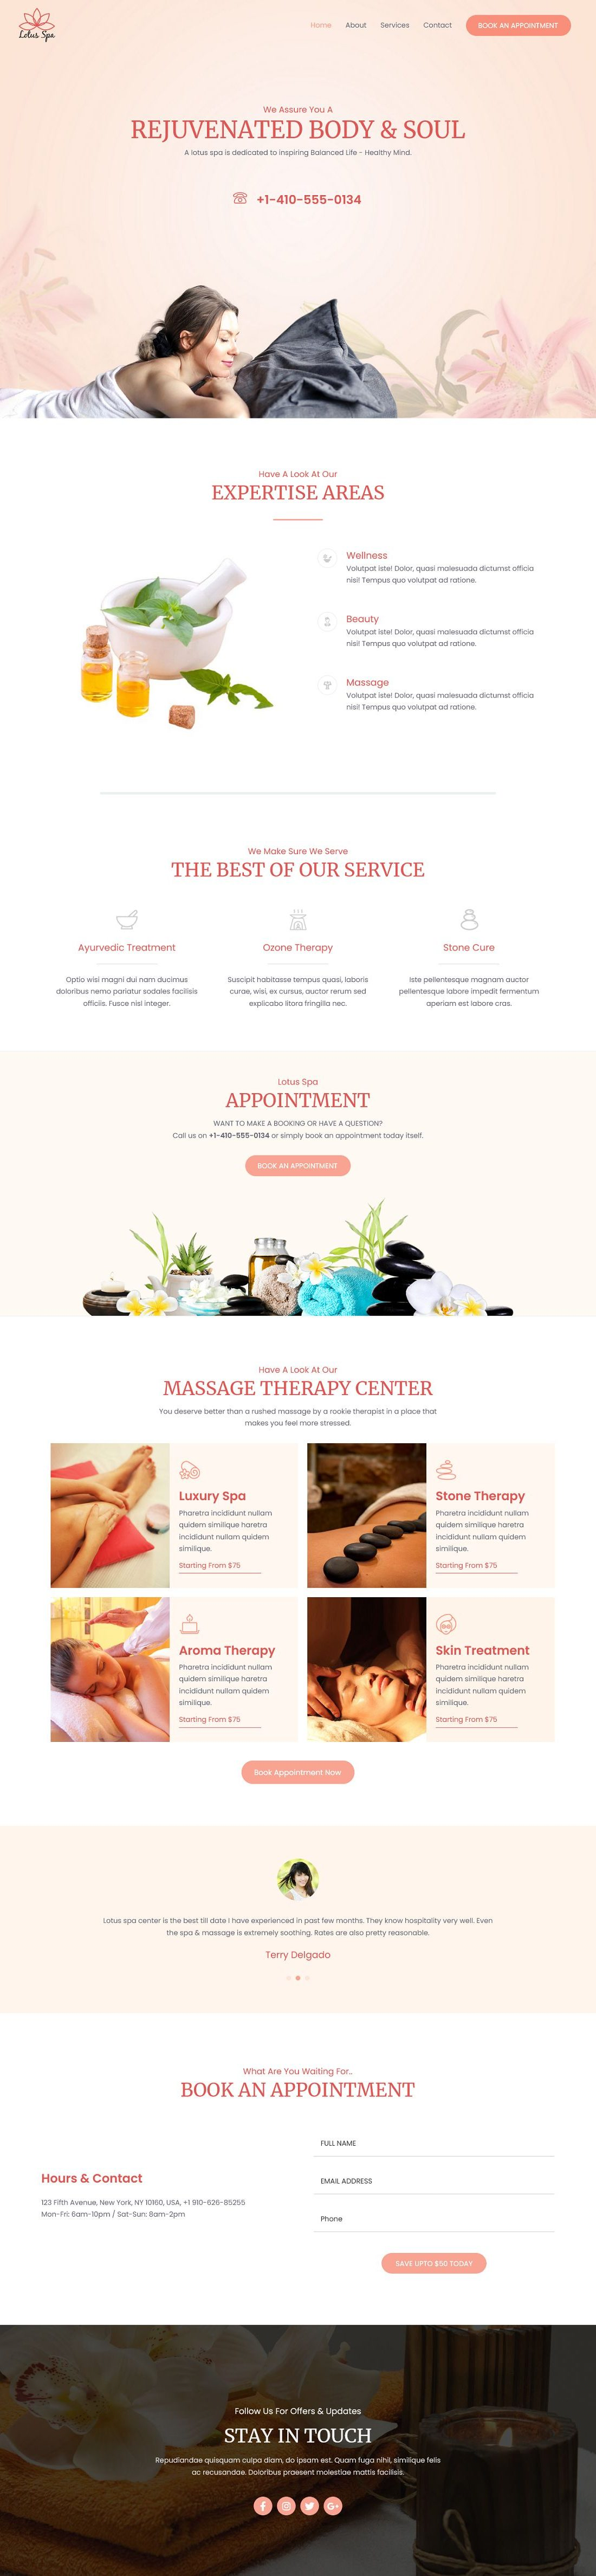 Spa A - Multipurpose - Home Page 1280 x 4753